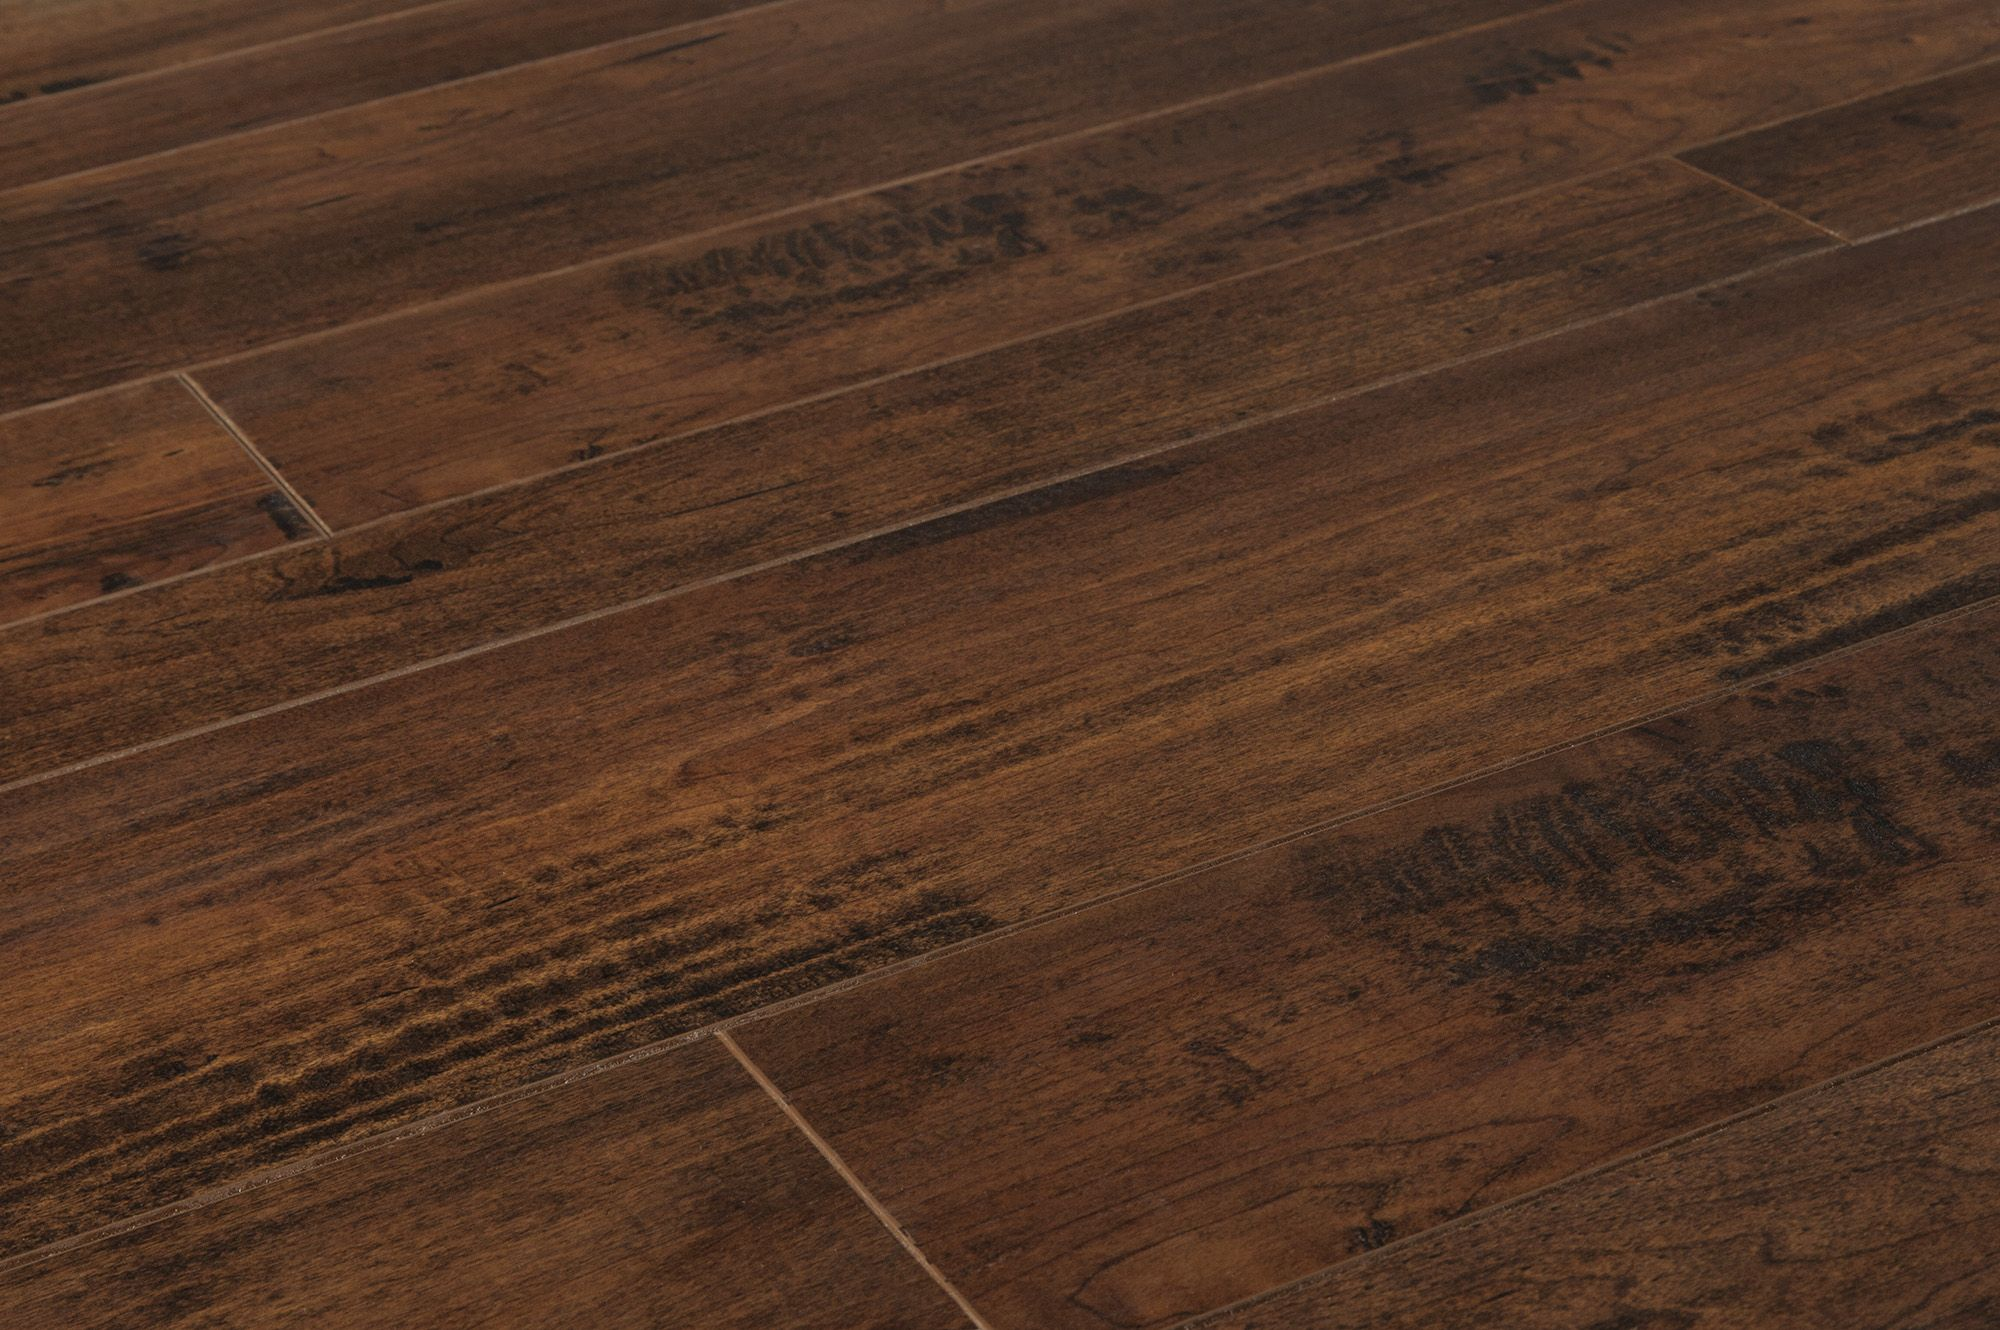 Builddirect Lamton Lamton 12mm Oldmill Collection Engineered Wood Floors Laminate Flooring Maple Laminate Flooring